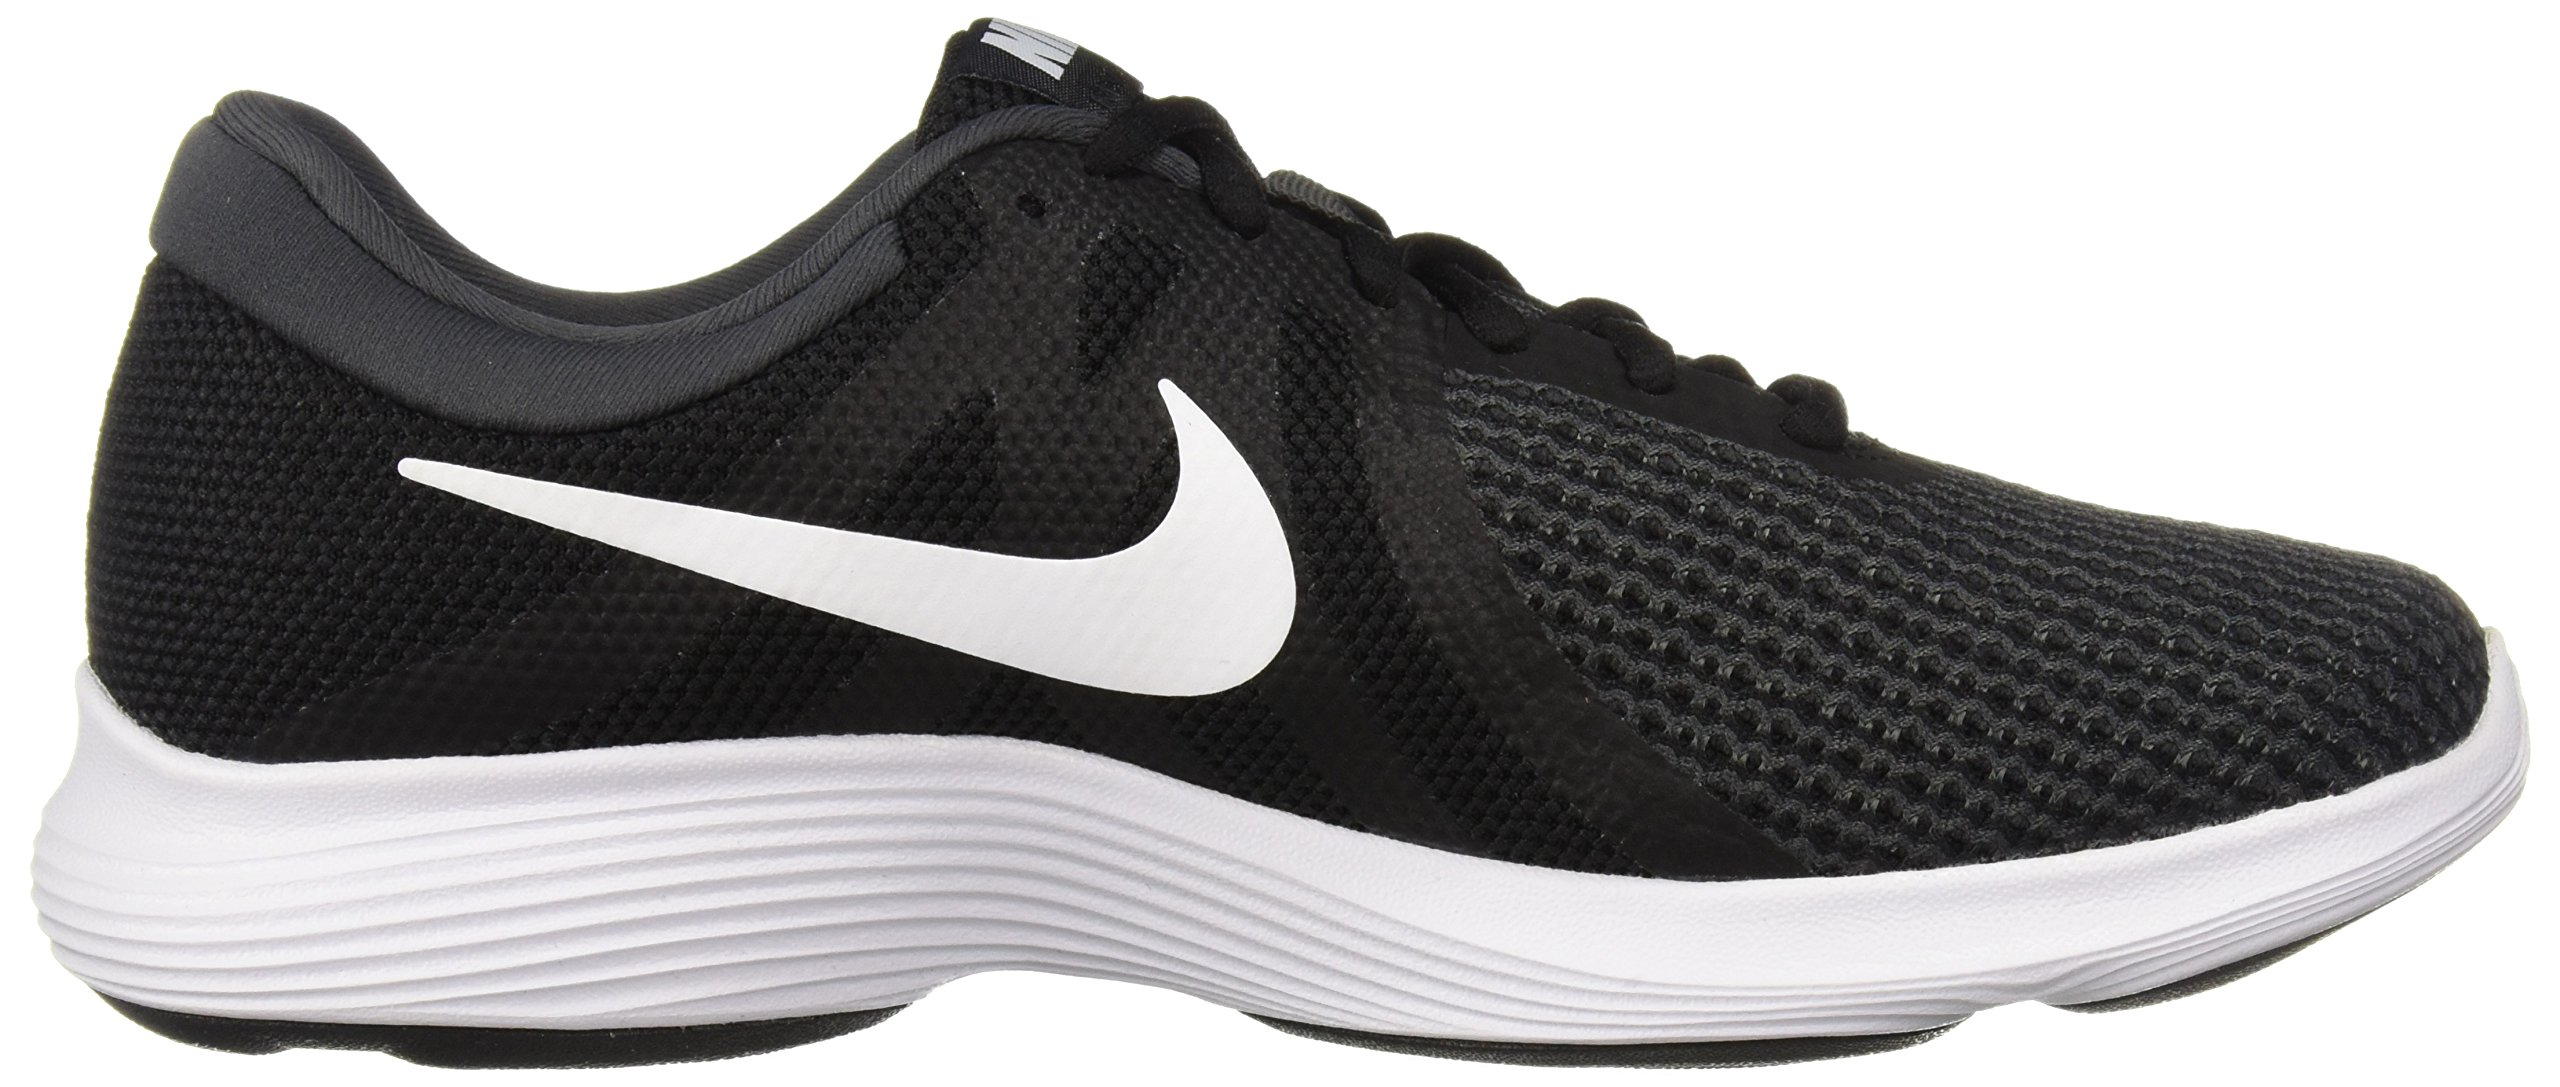 Nike Men's Revolution 4 Running Shoe, Black/White-Anthracite, 6.5 Regular US by Nike (Image #6)